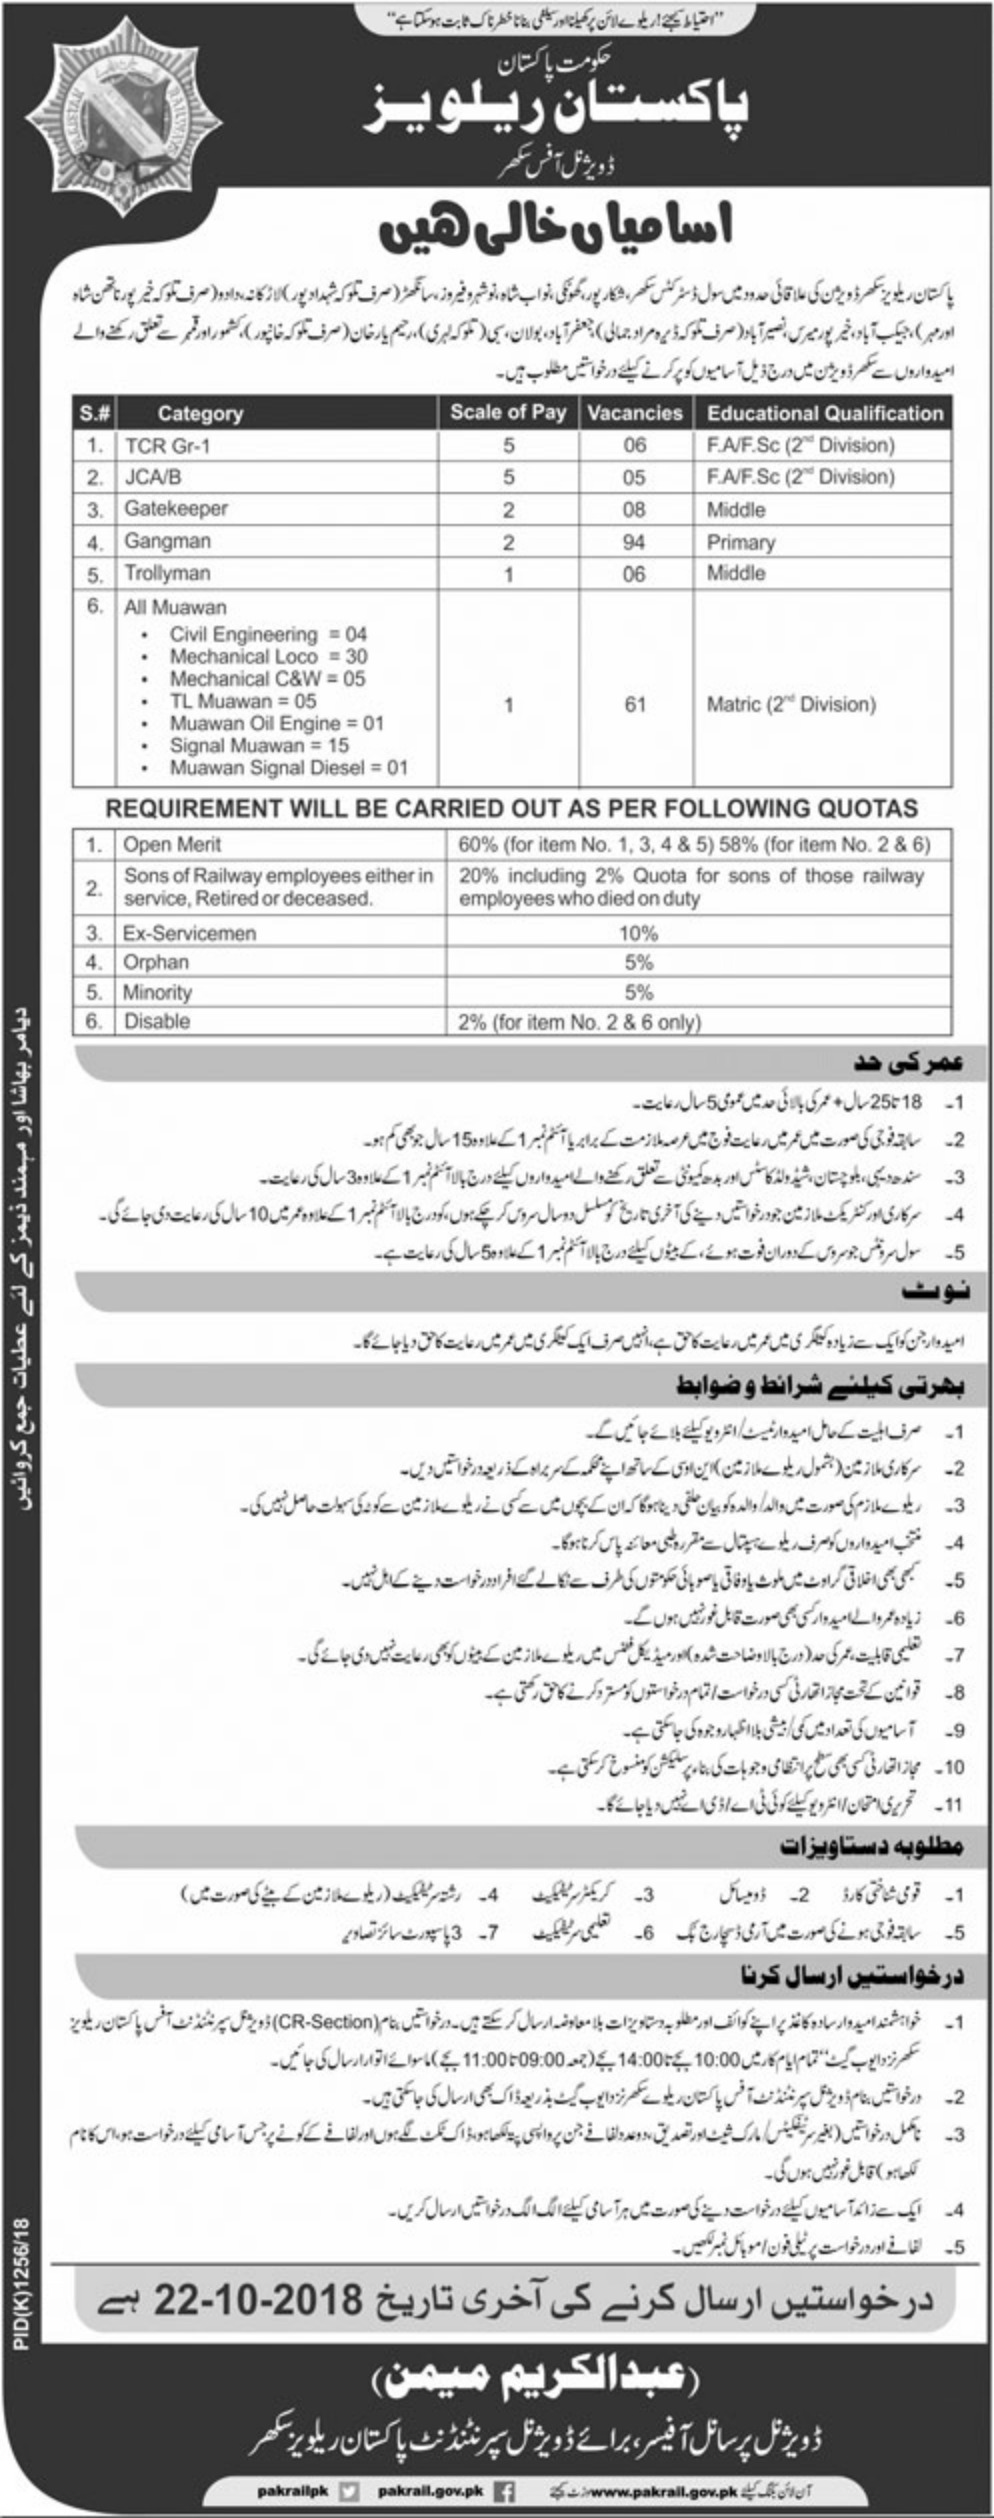 Pakistan Railways Sukkur Division Latest Jobs 2018